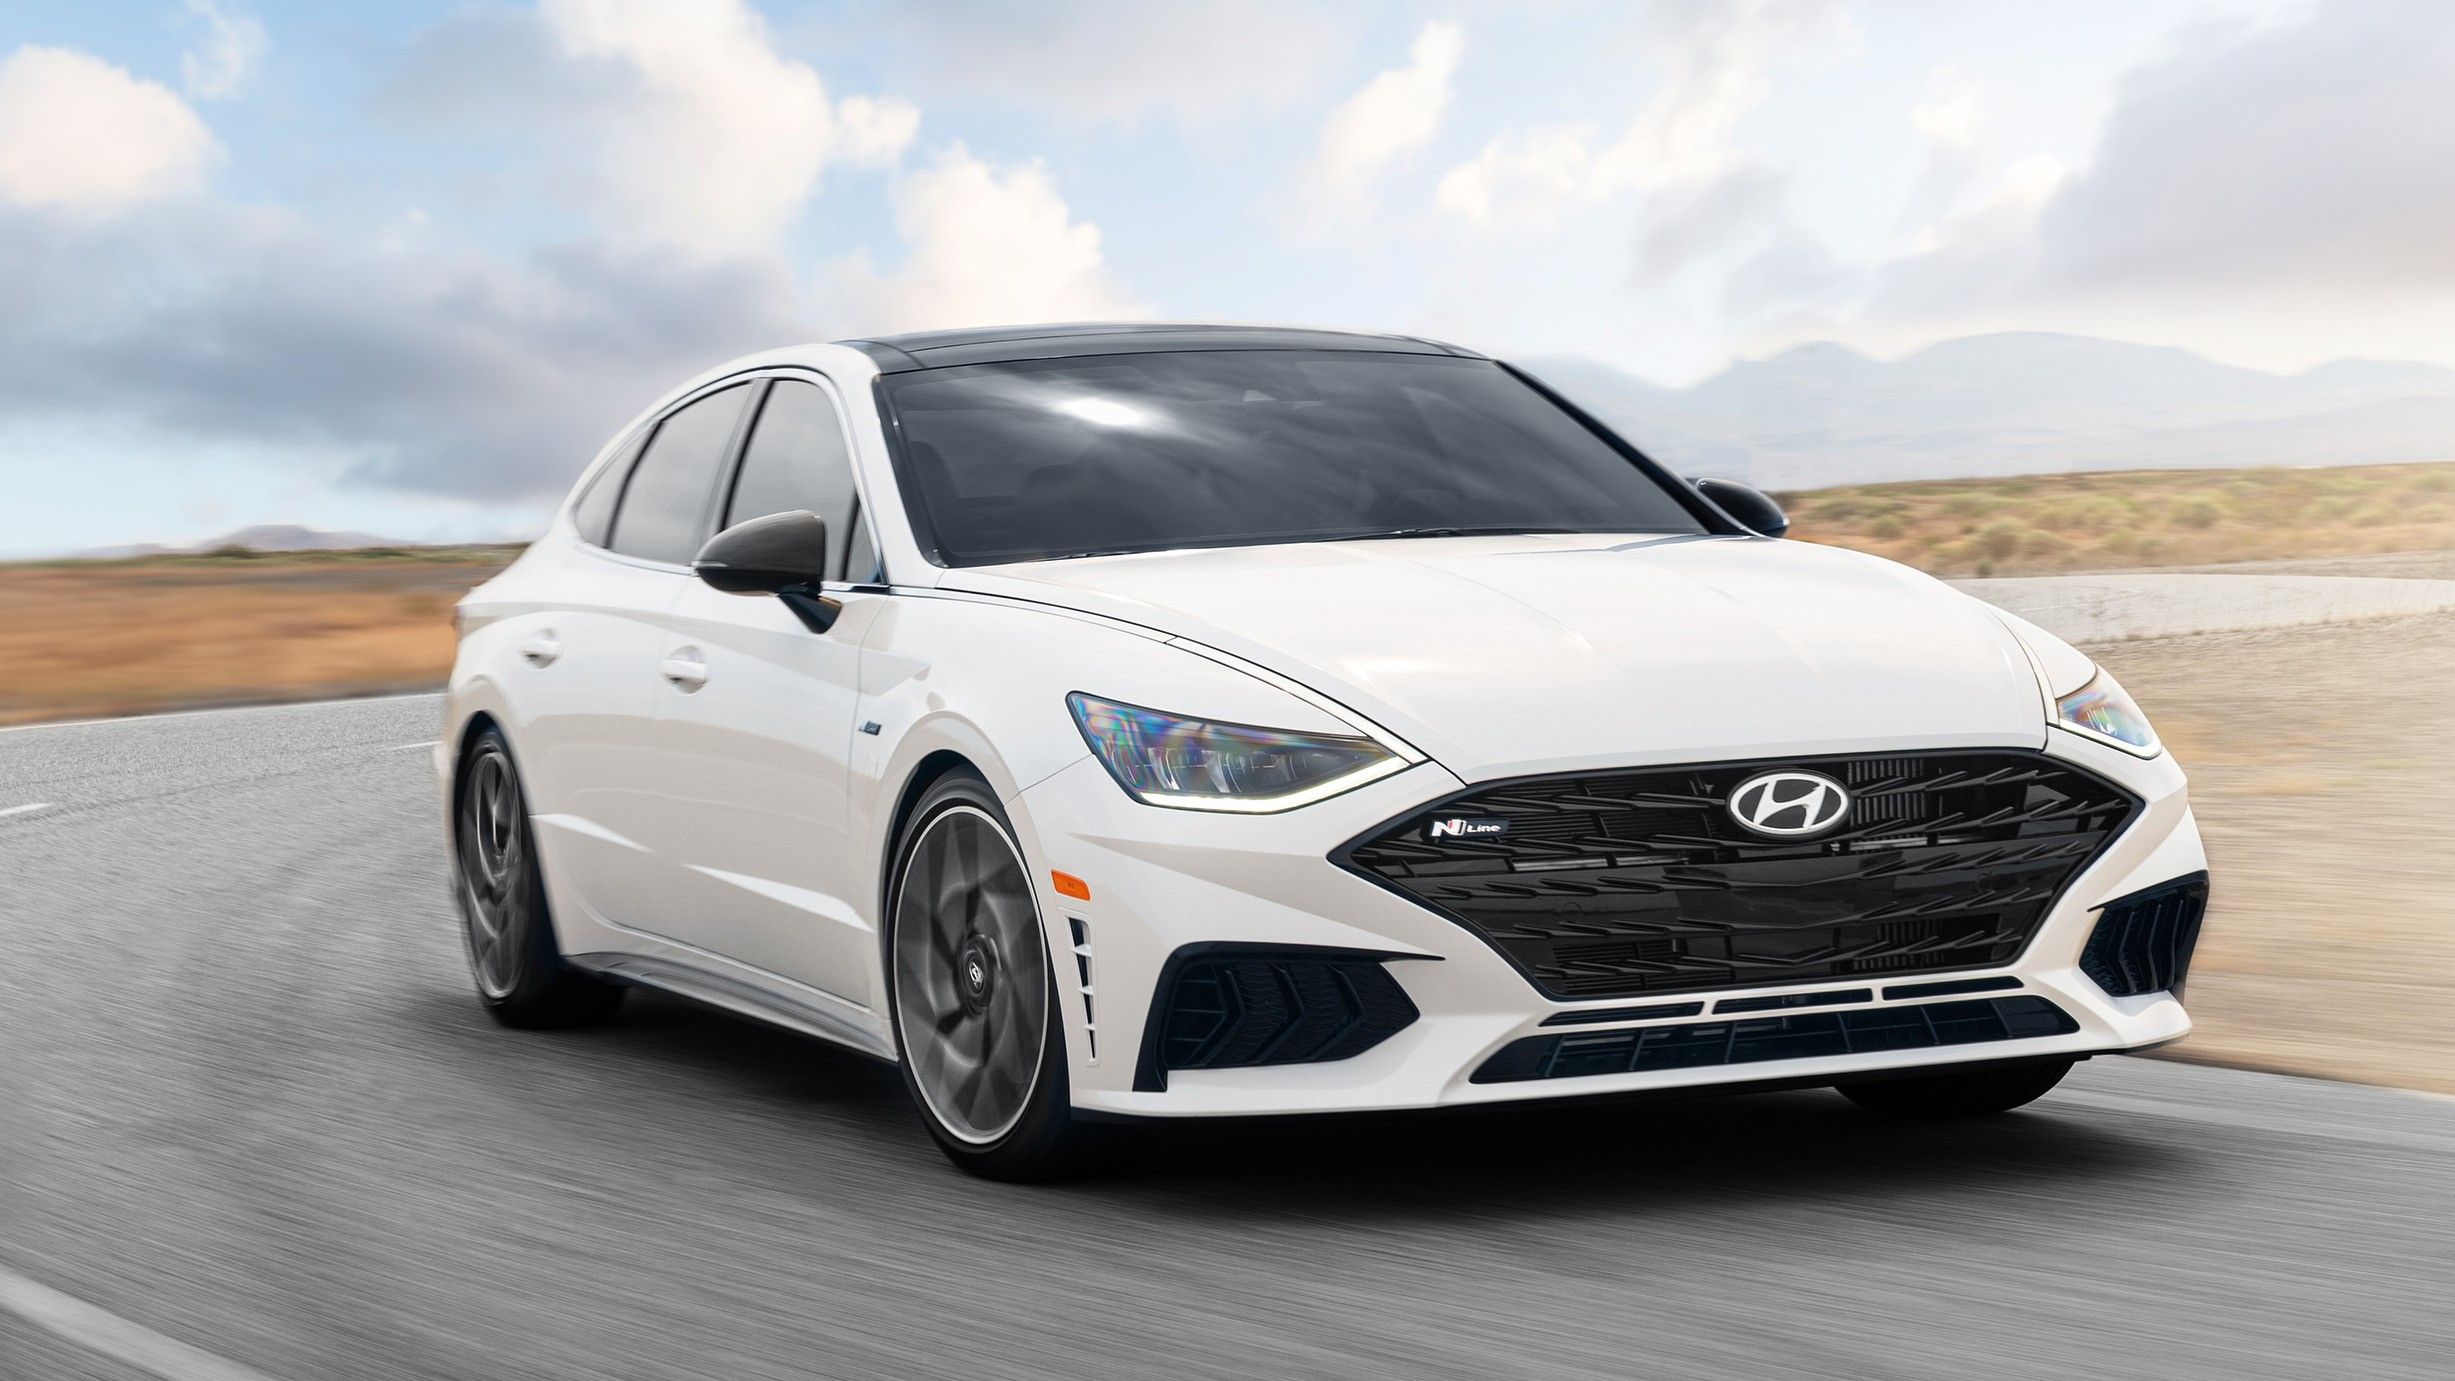 2021 hyundai sonata n line review - prices, release date